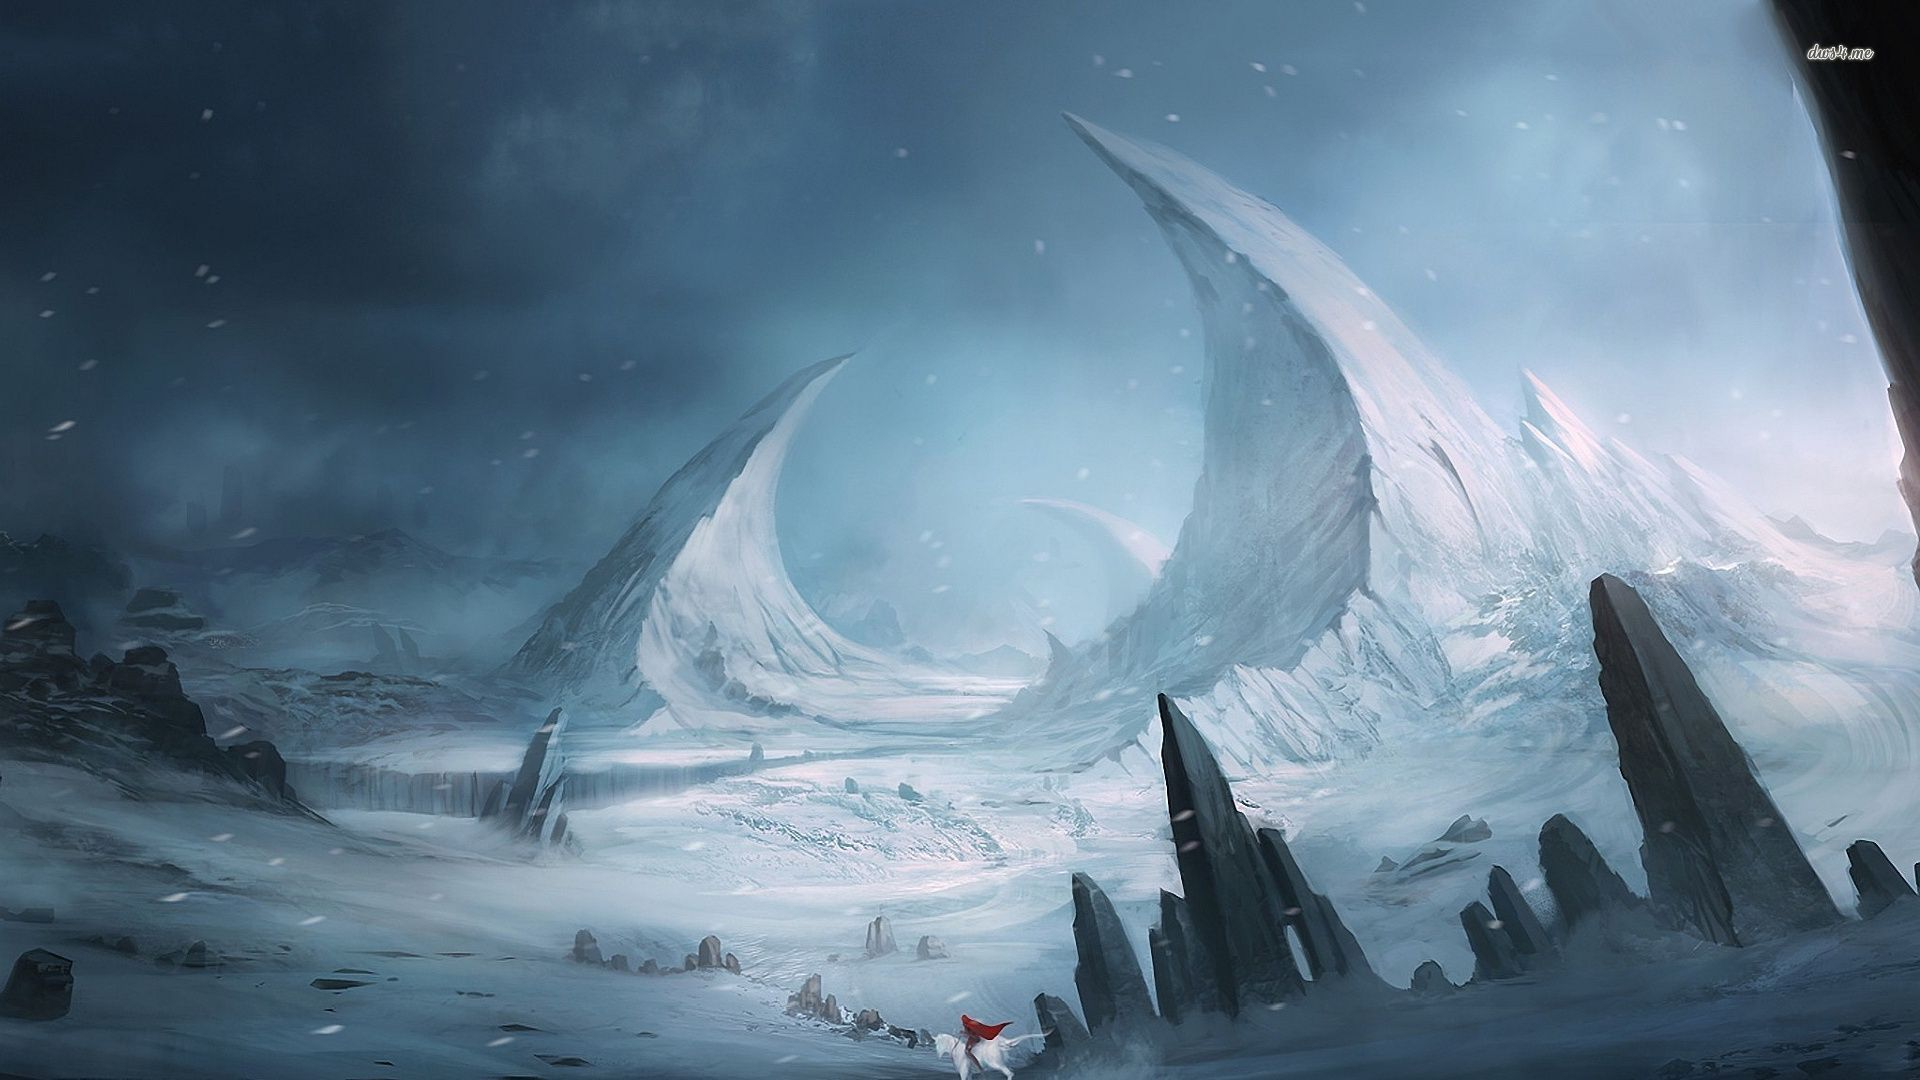 26904-horseman-on-the-icy-planet-1920x1080-fantasy-wallpaper (1).jpg